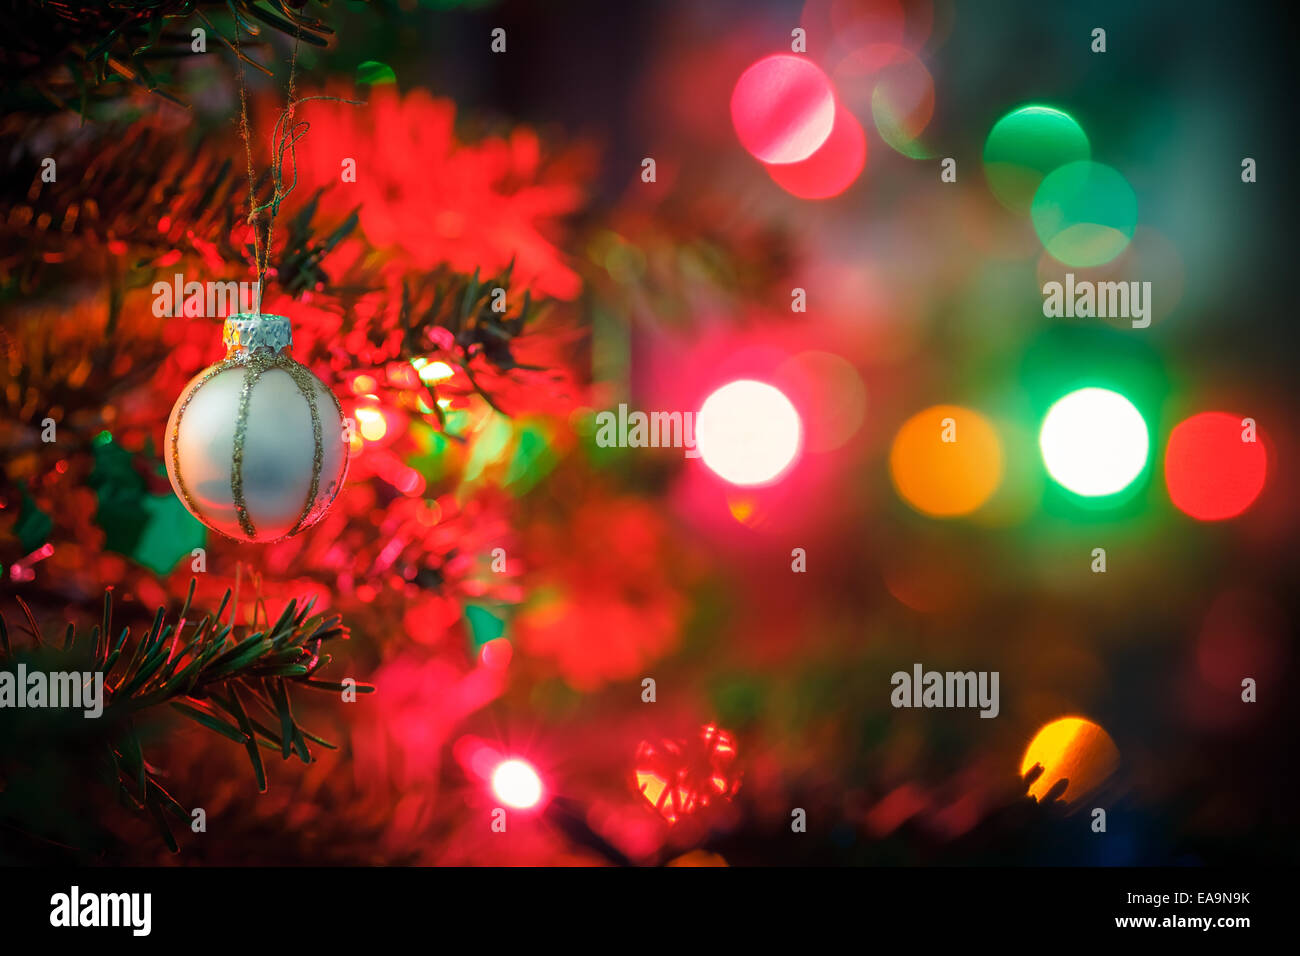 Decorated Christmas Tree Photo Stock